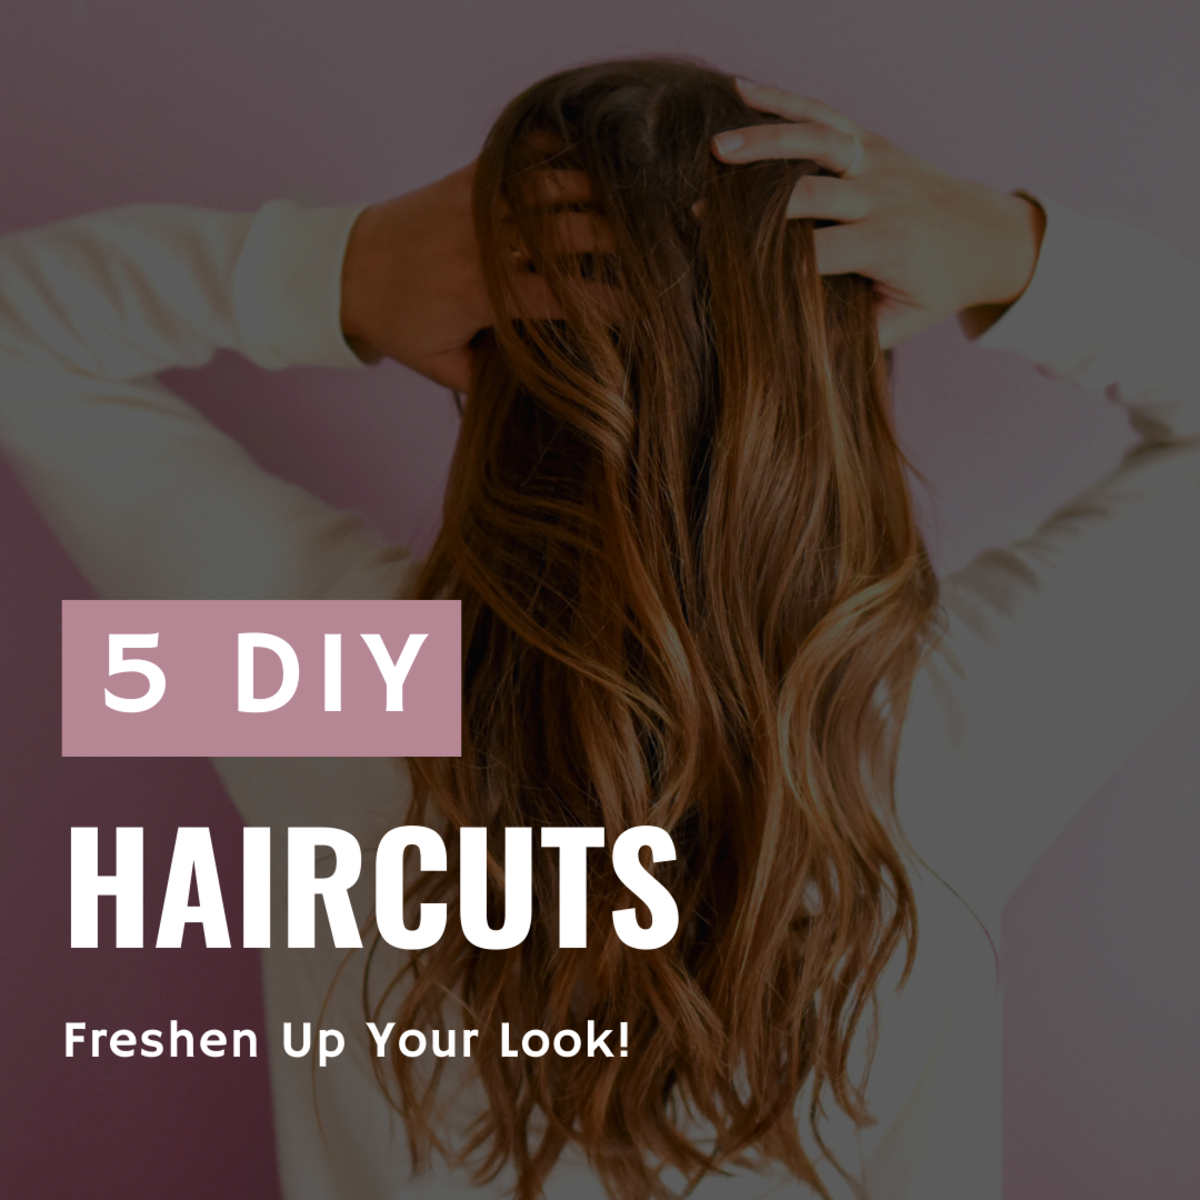 These five cuts will have you looking your best for less!